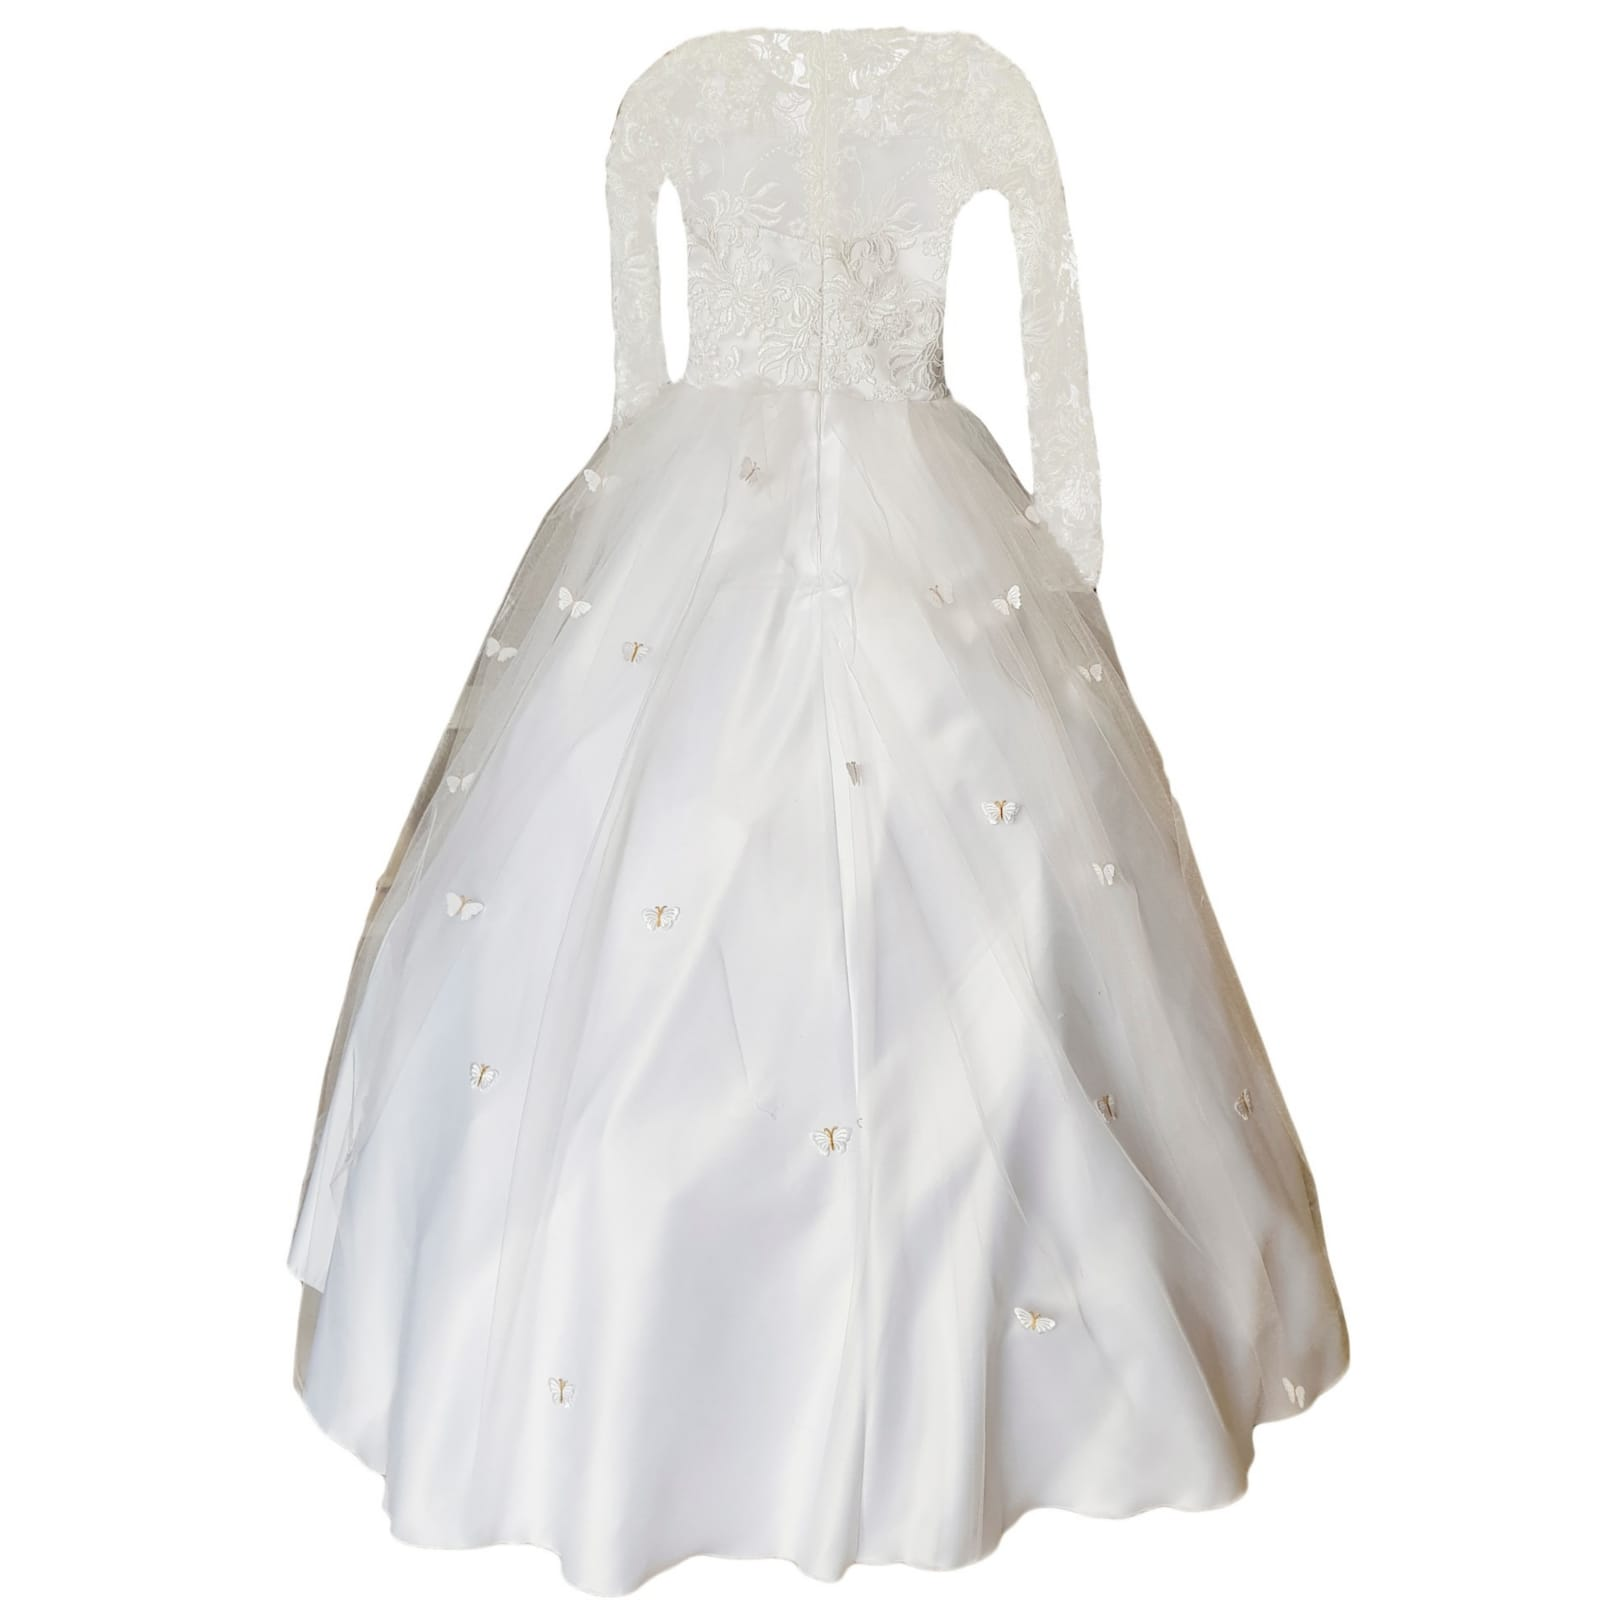 White holy communion ball gown dress 4 white holy communion ball gown dress. With a lace bodice. Long lace sleeves. Holy communion dress detailed with butterflies.